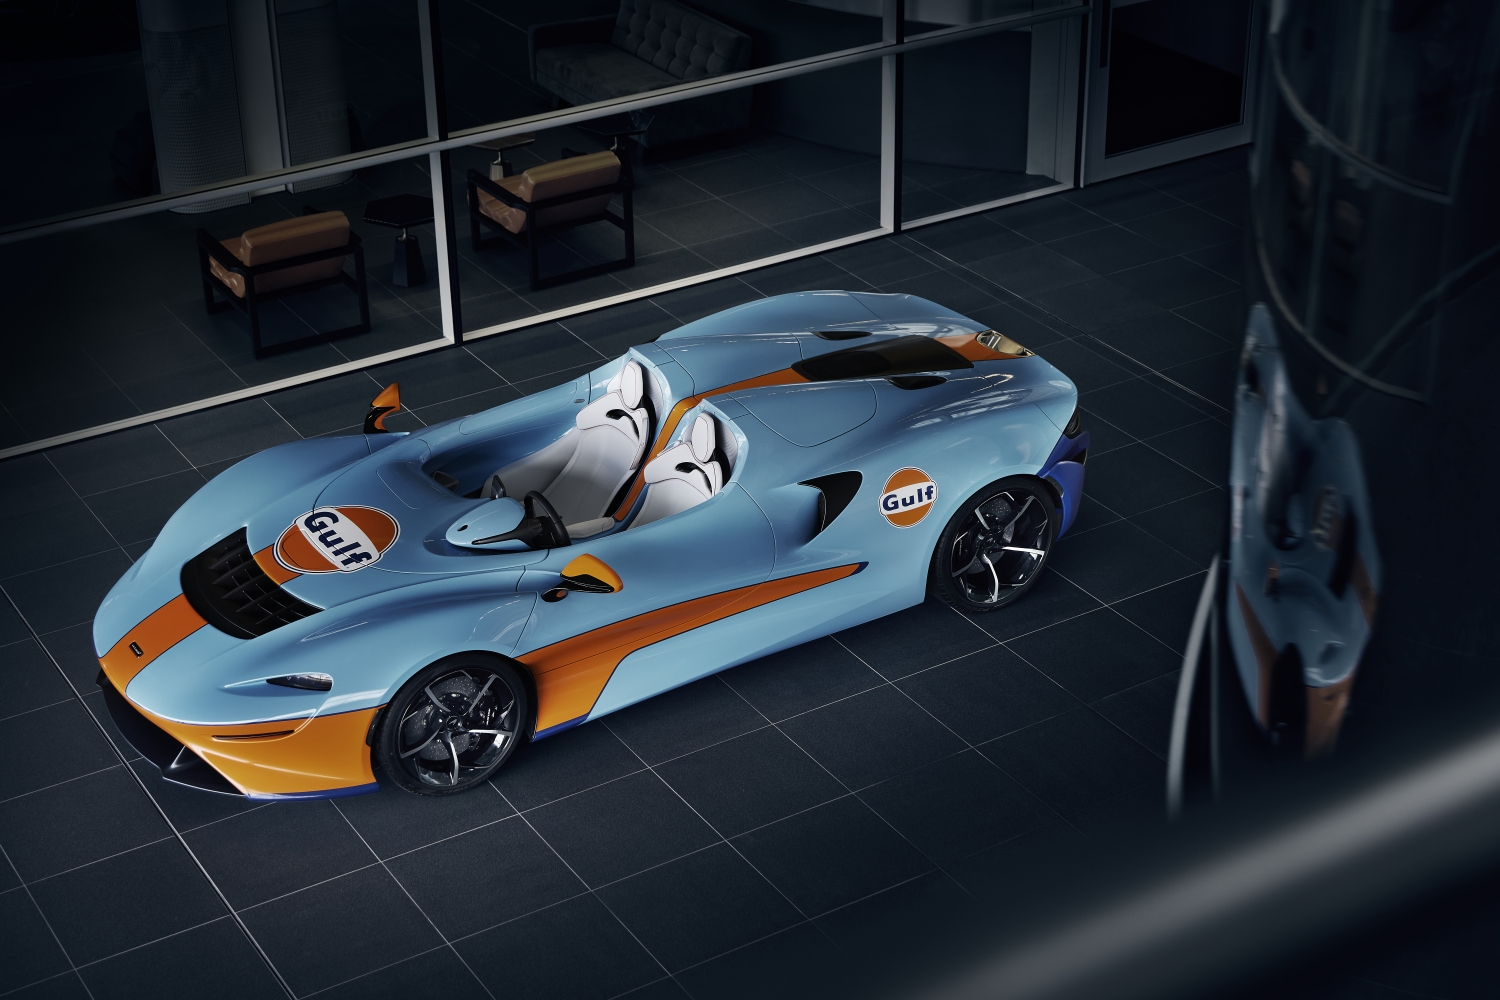 Mclaren Elva Gulf limited edition